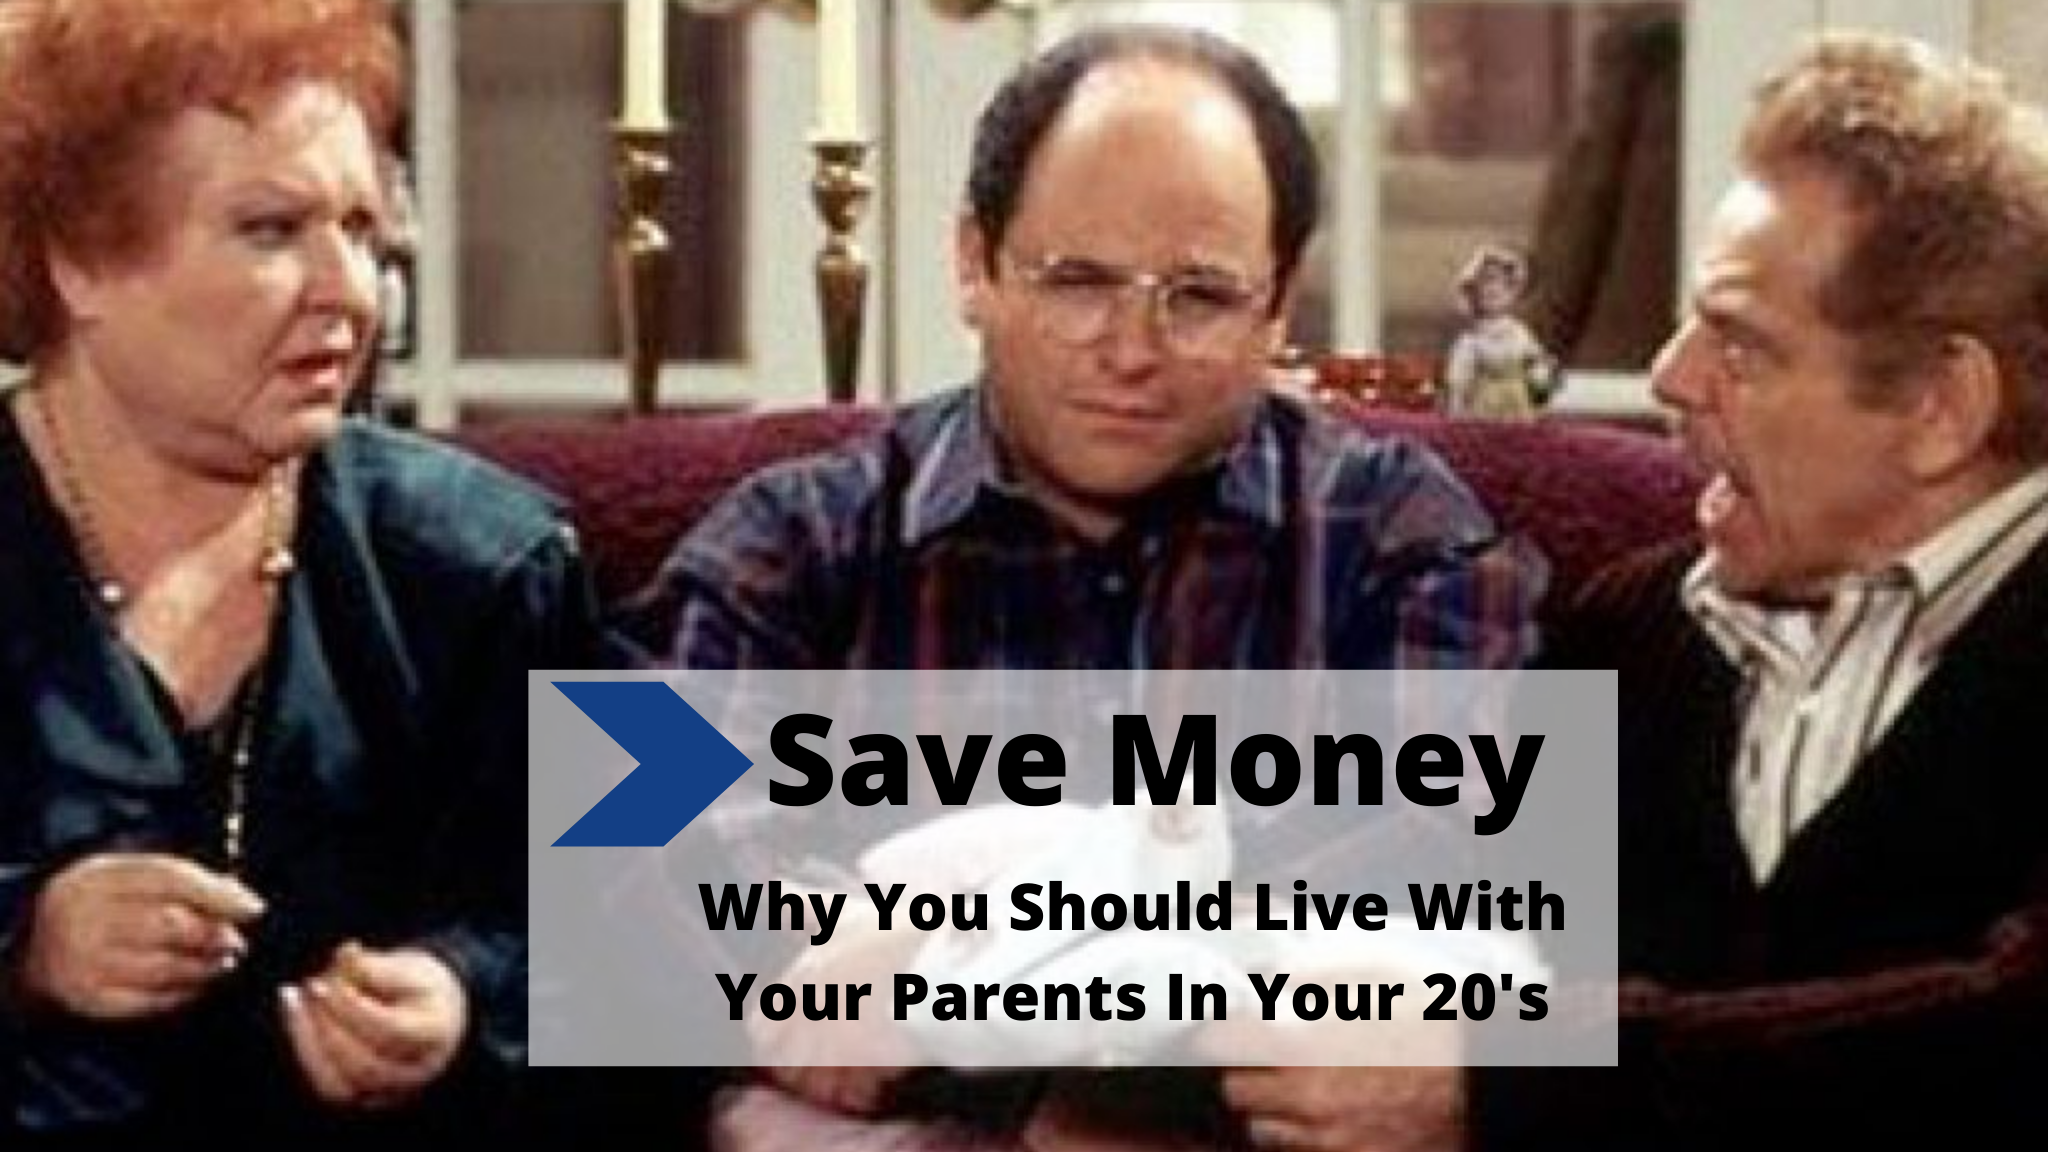 Why You Should Live With Your Parents In Your 20's